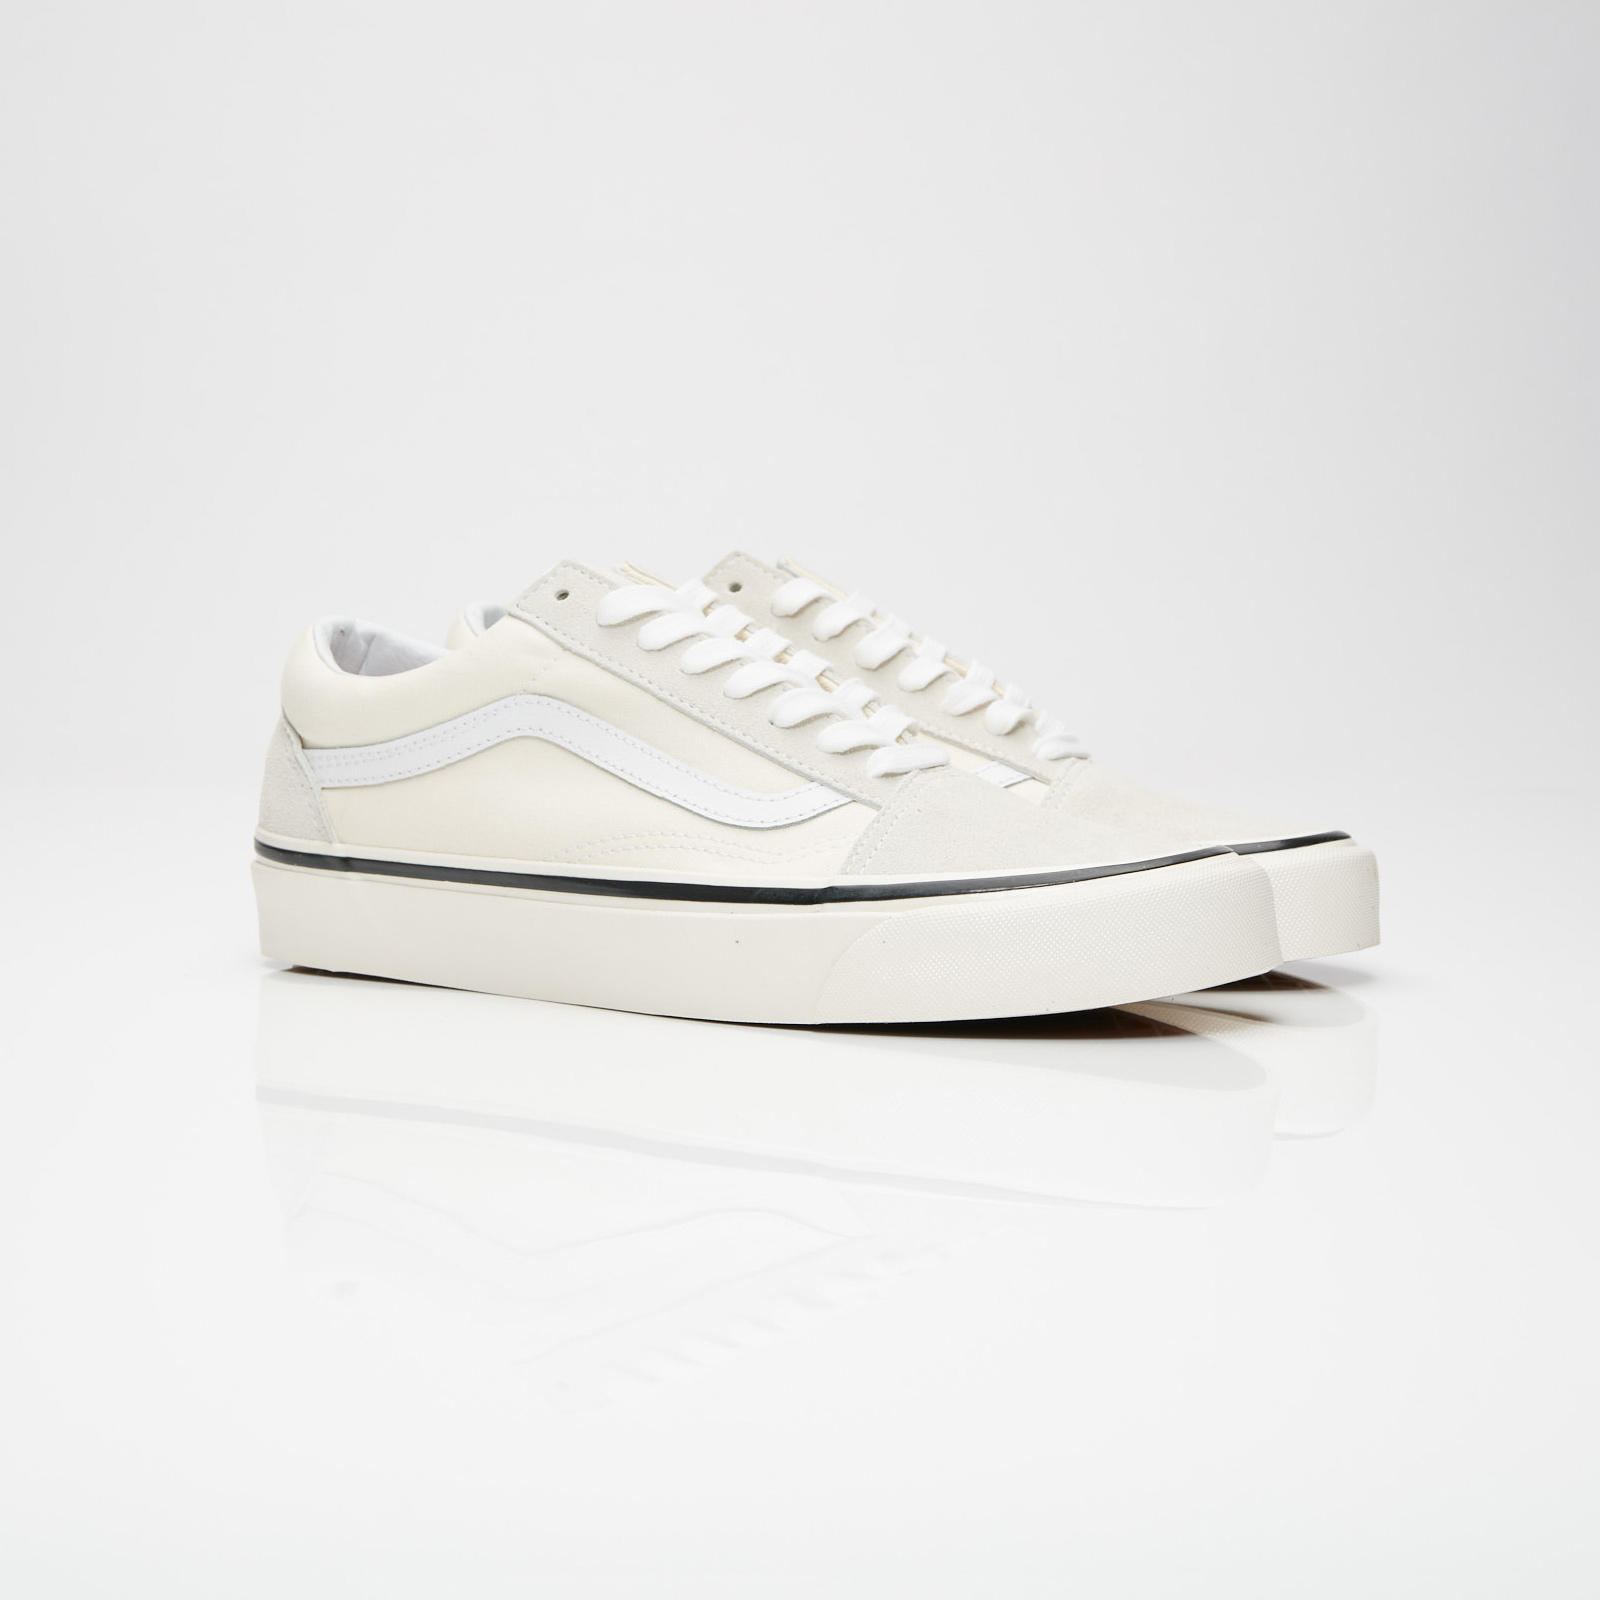 121f831249 Vans UA Old Skool 36 DX - Va38g2mr4 - Sneakersnstuff